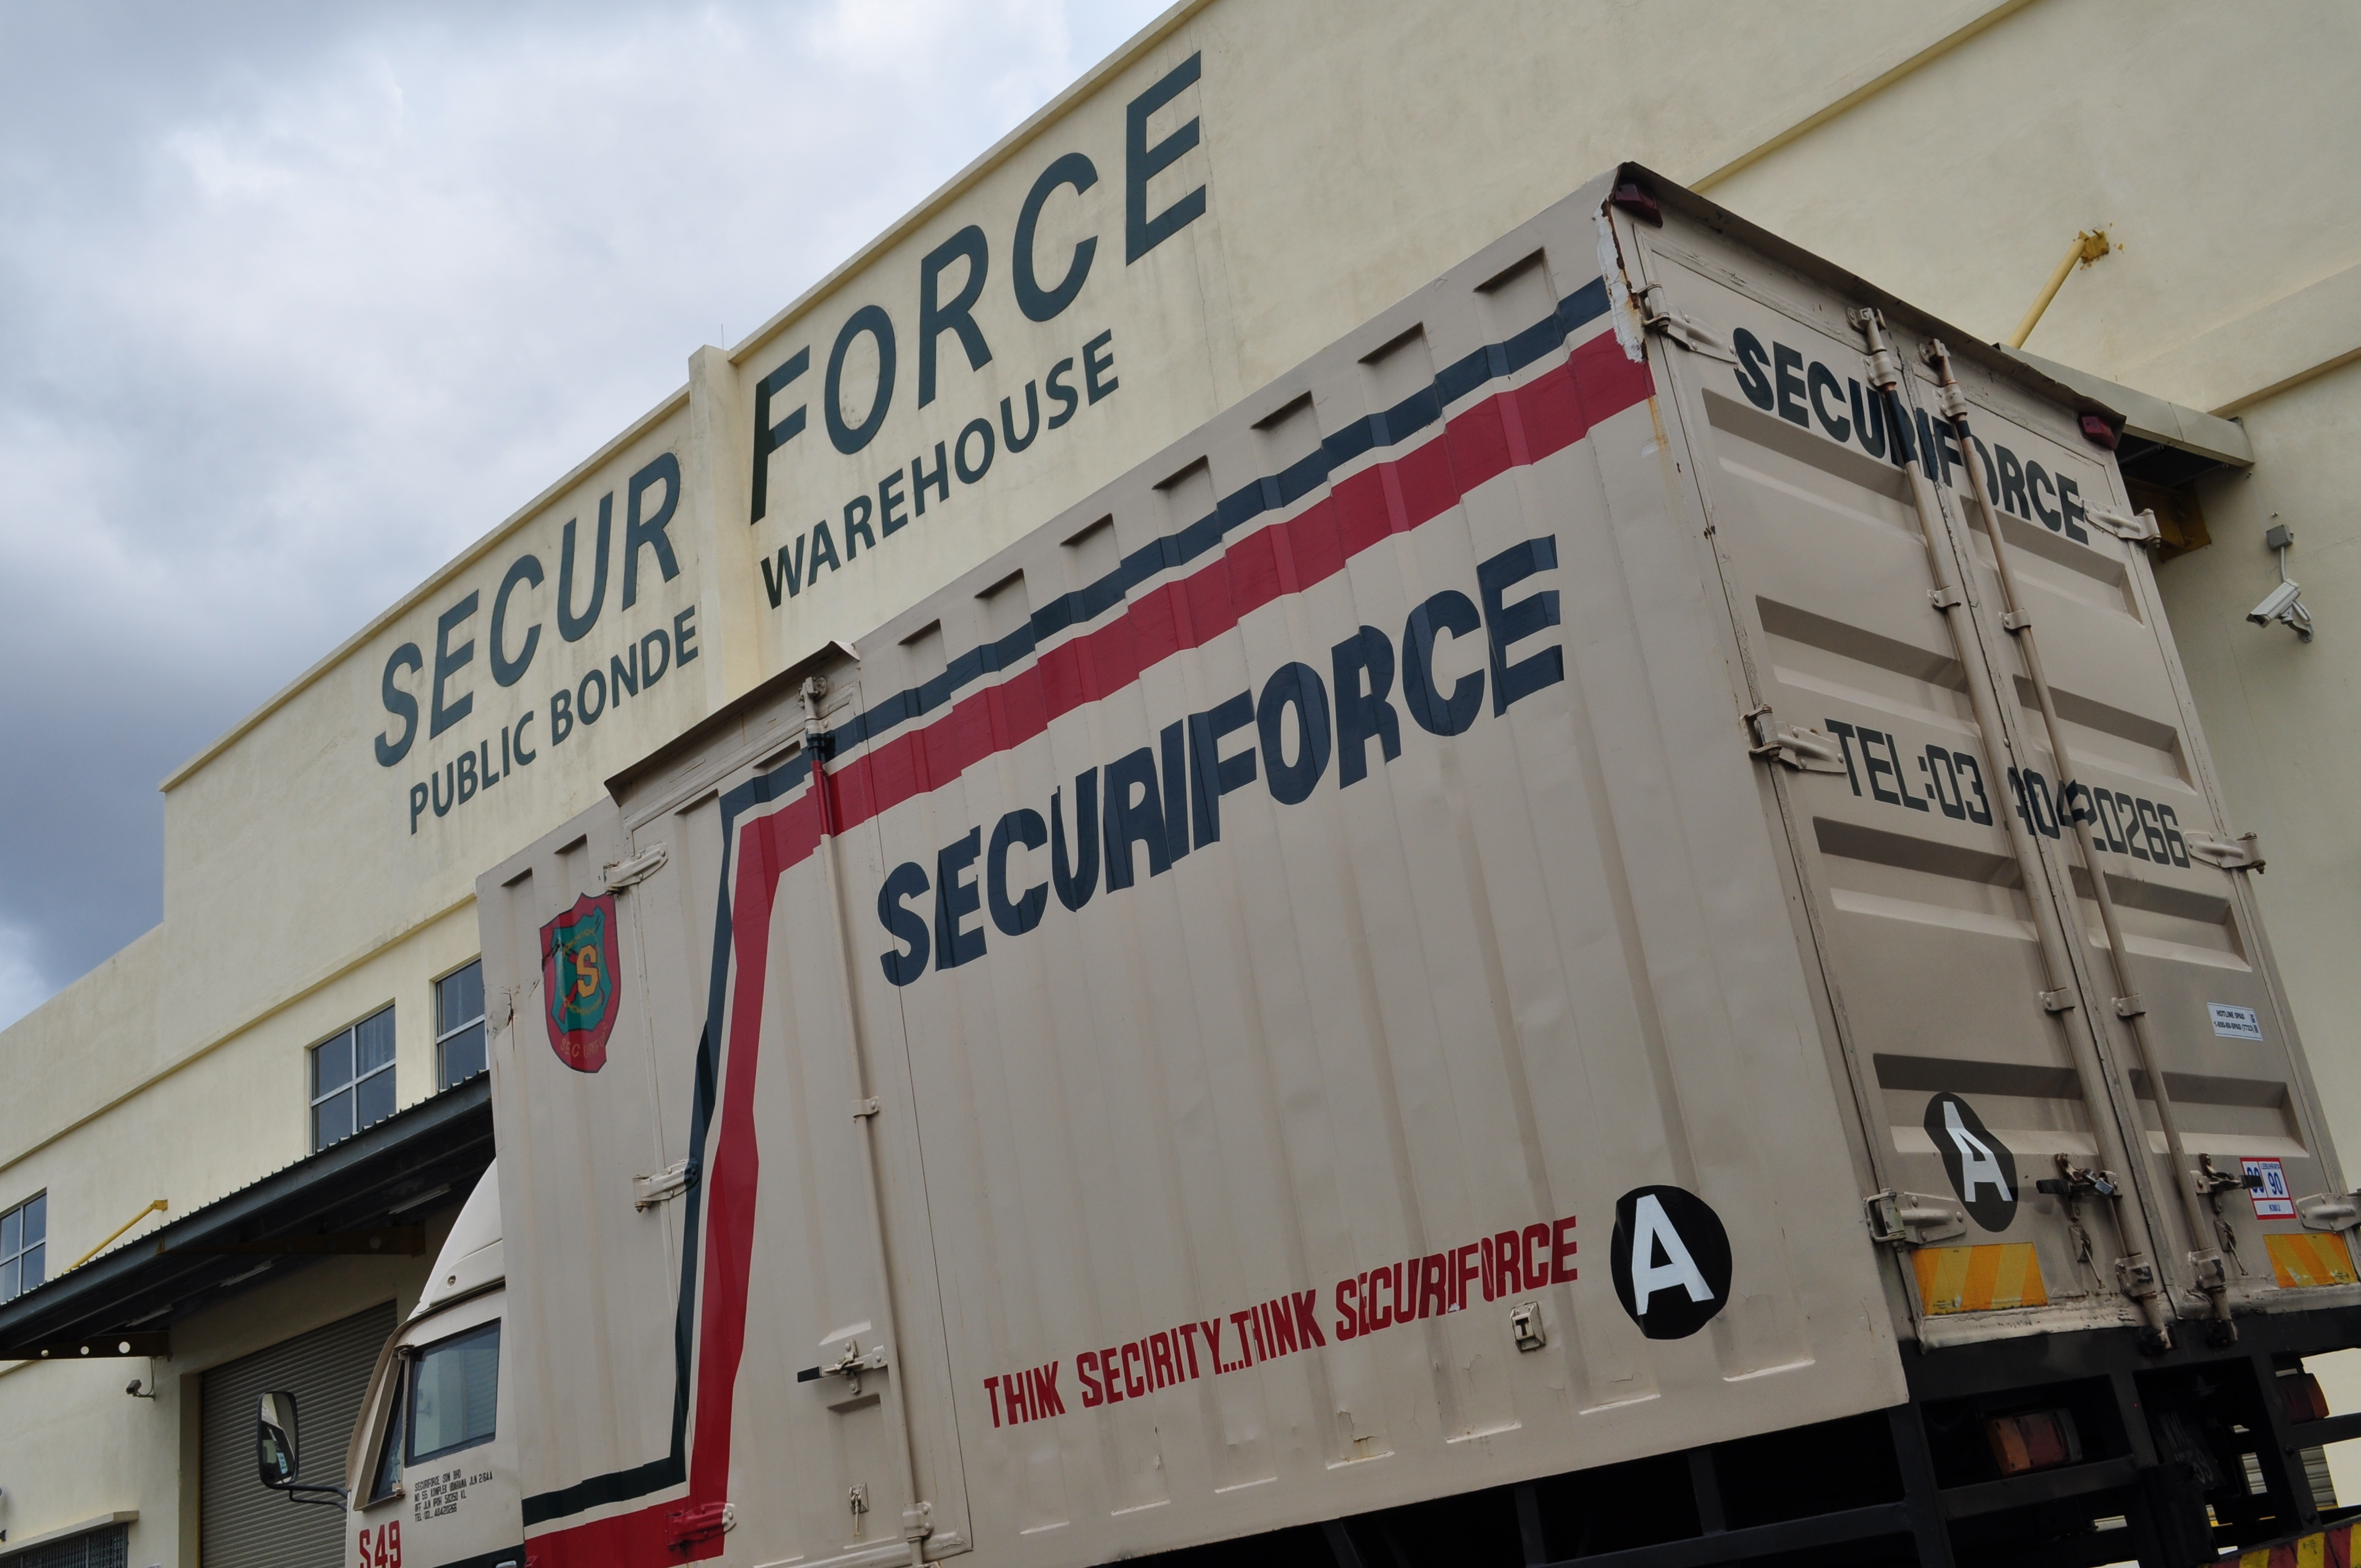 Securiforce Logistic